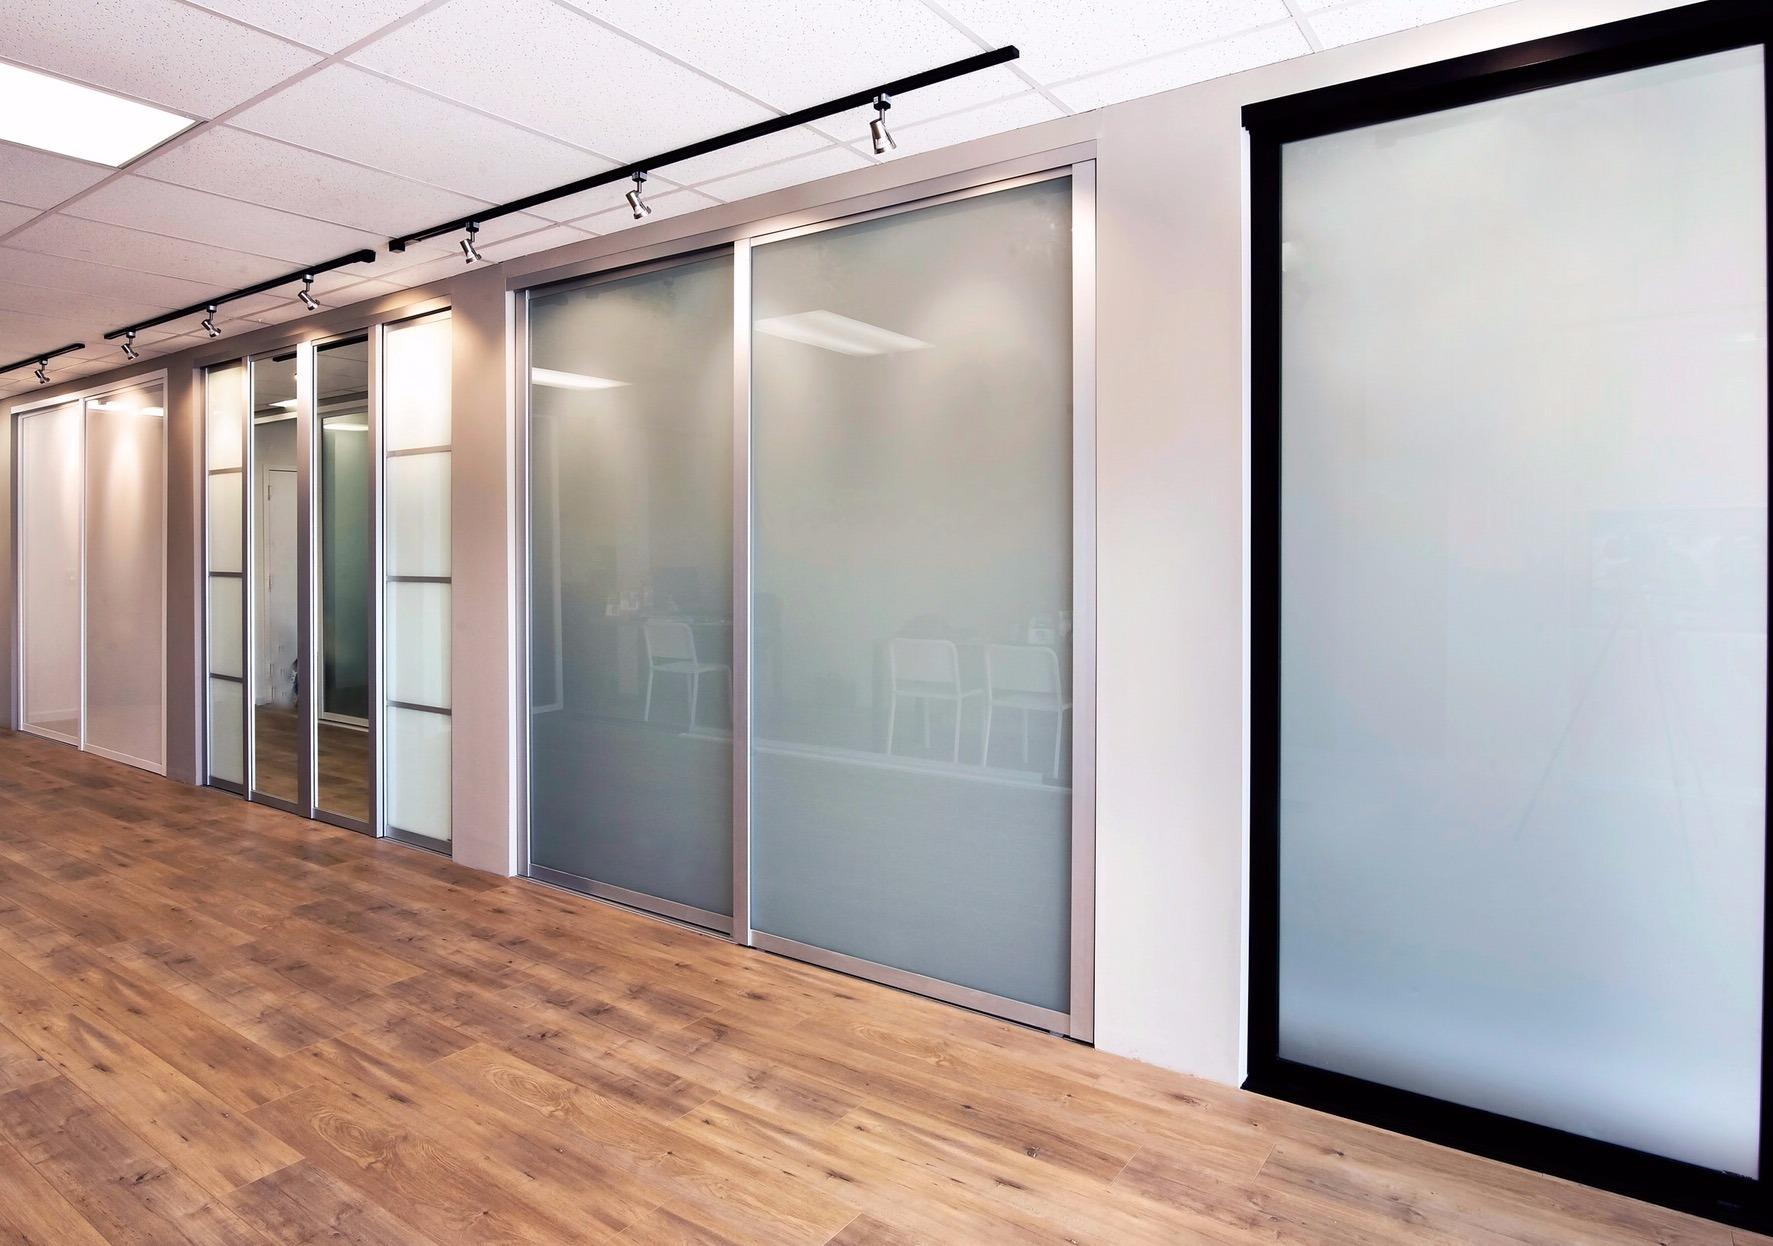 Knr sliding glass doors los angeles office furniture for Closet doors los angeles